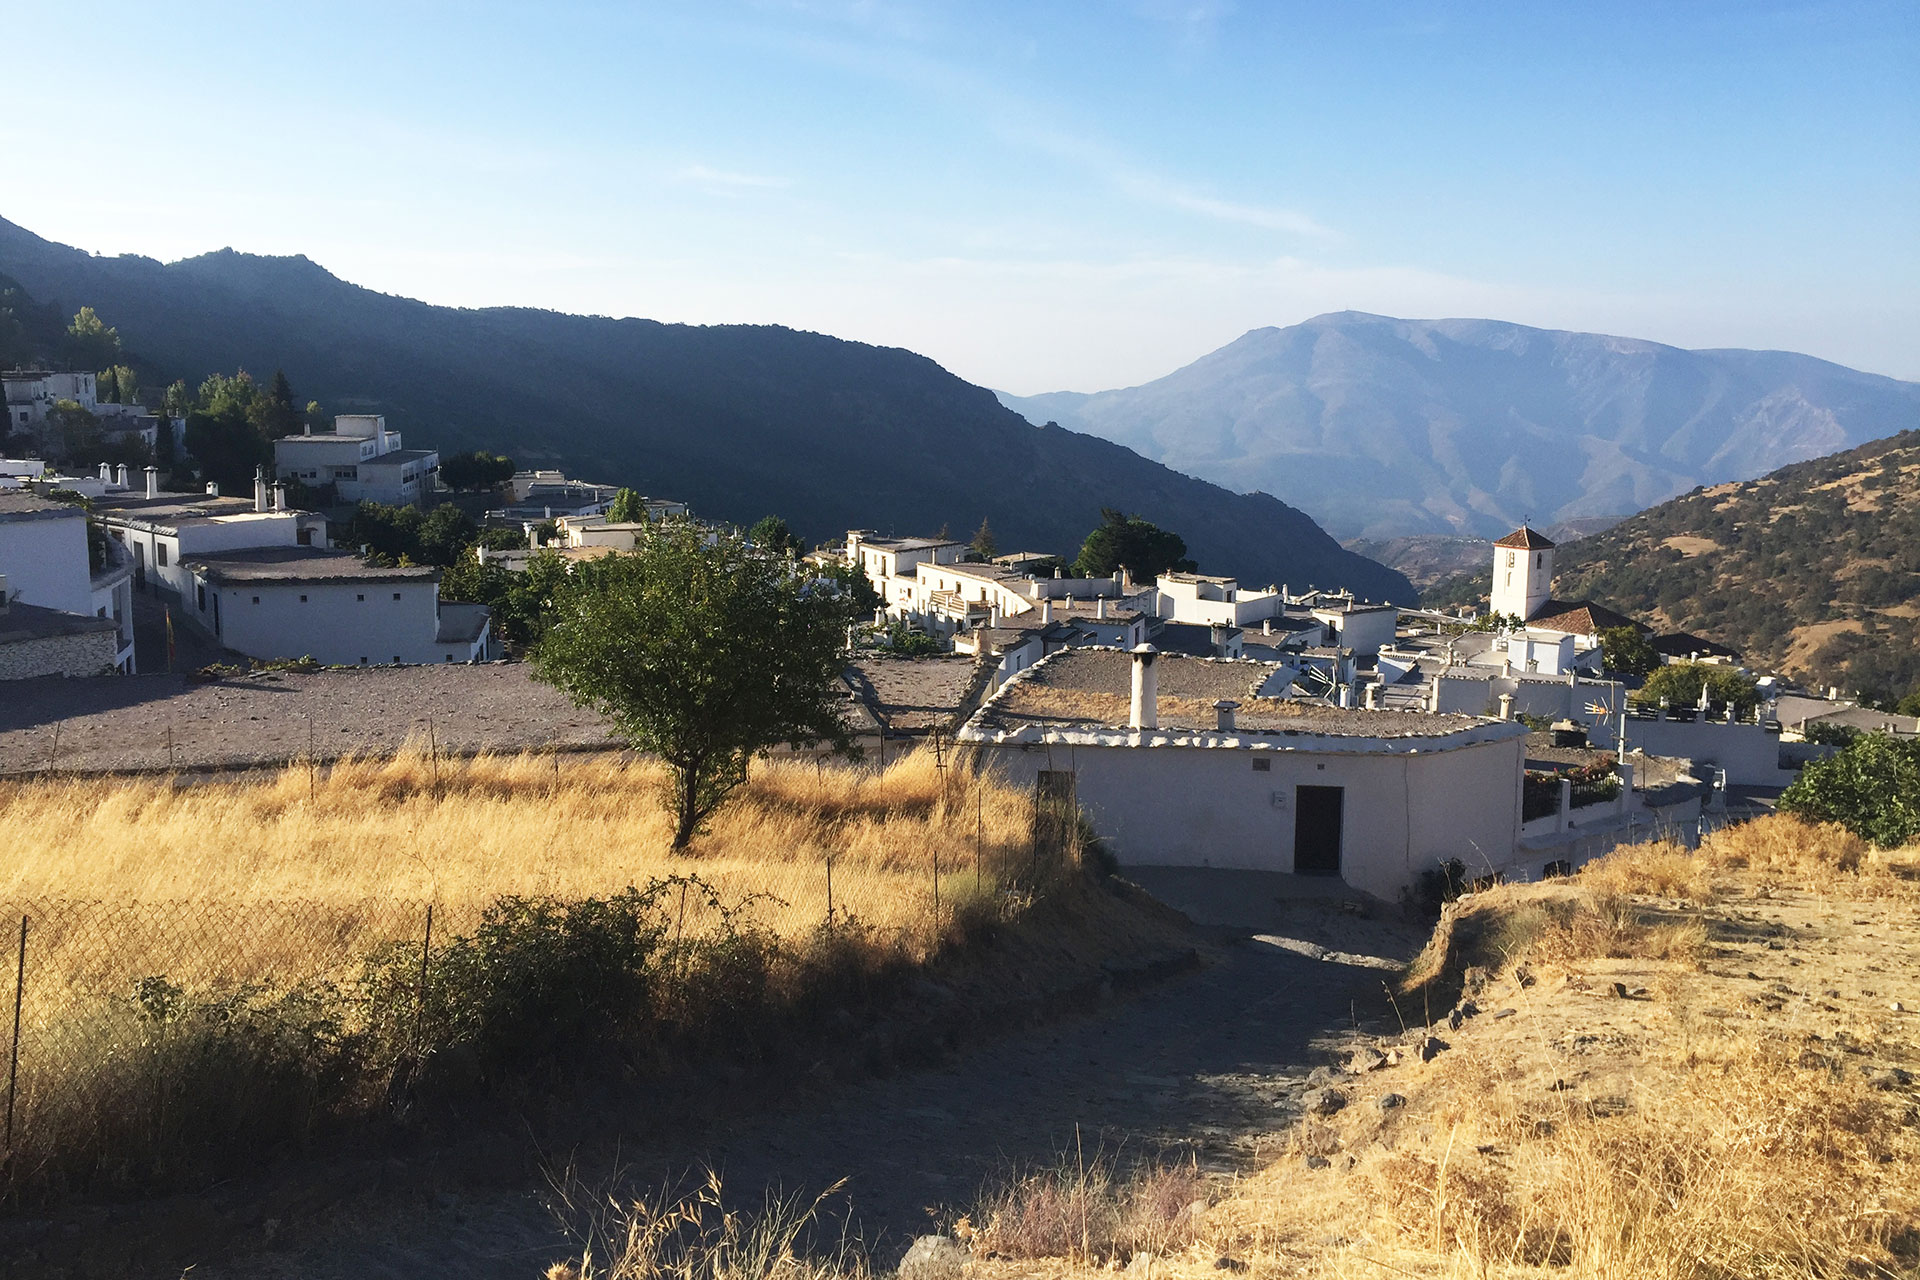 Andalusia: Where Our Executive Digital Editor Will Return Once His Travels Resume